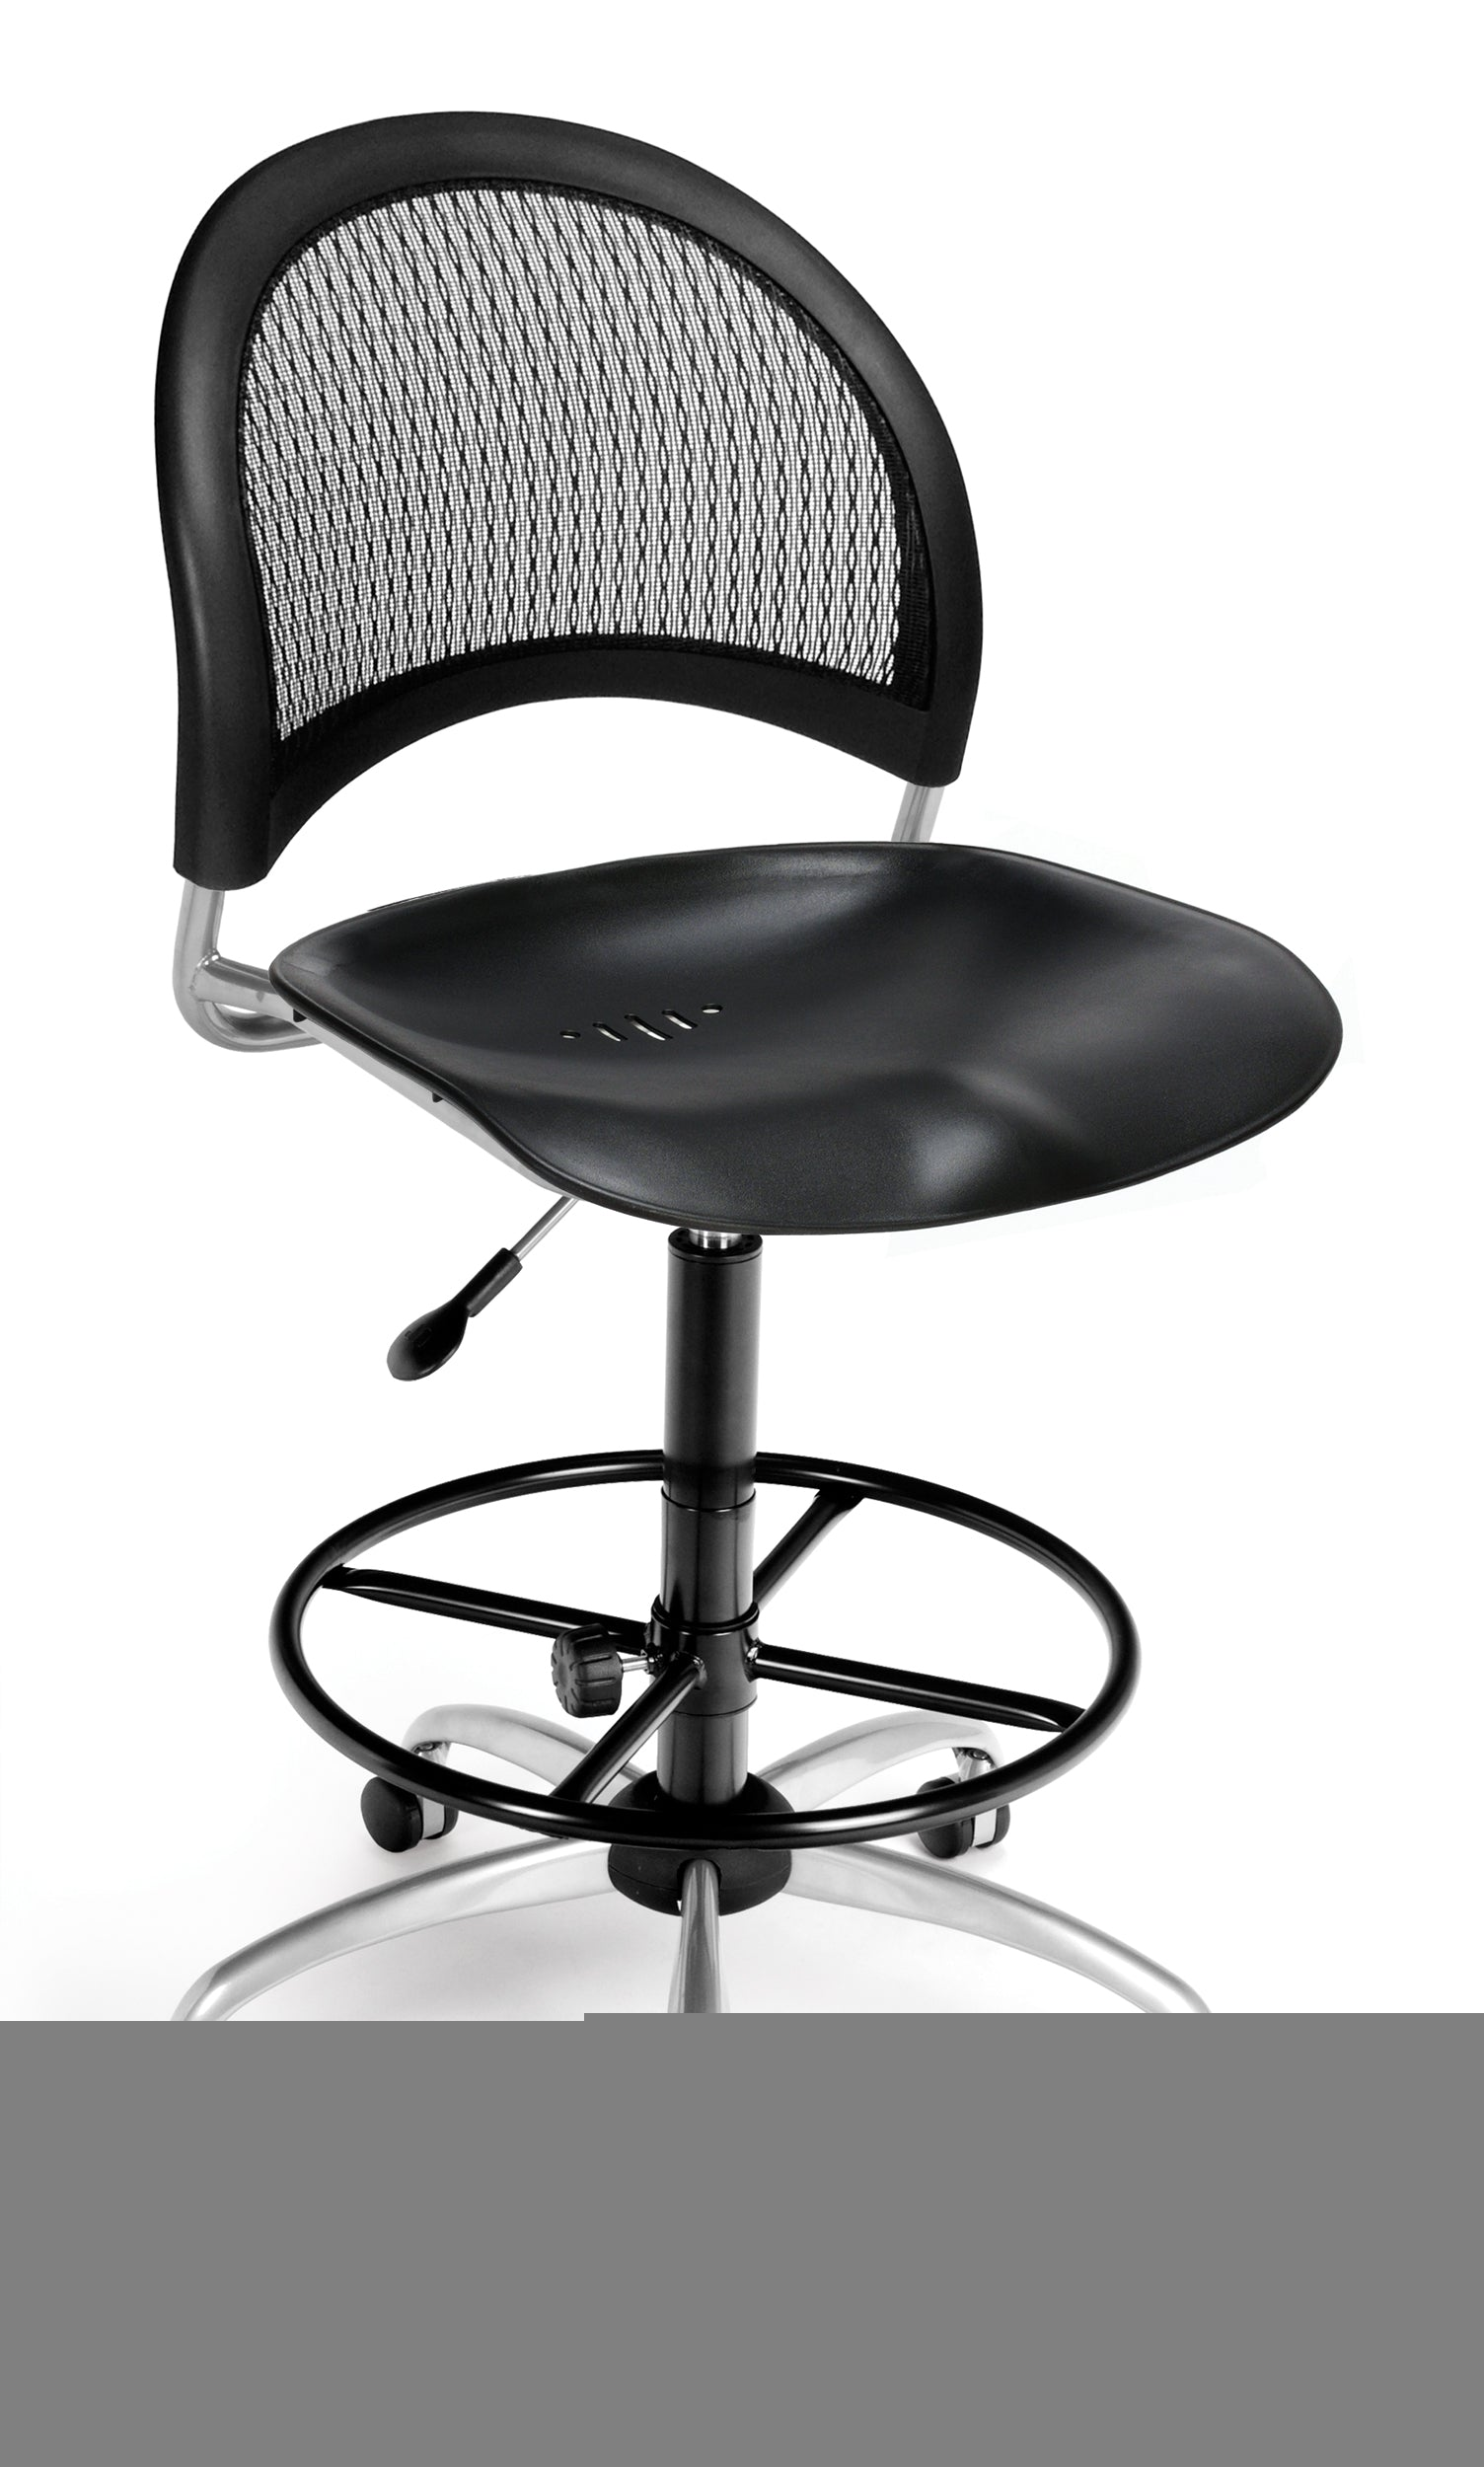 336-P-DK Moon Series Armless Plastic Swivel Chair with Drafting Kit